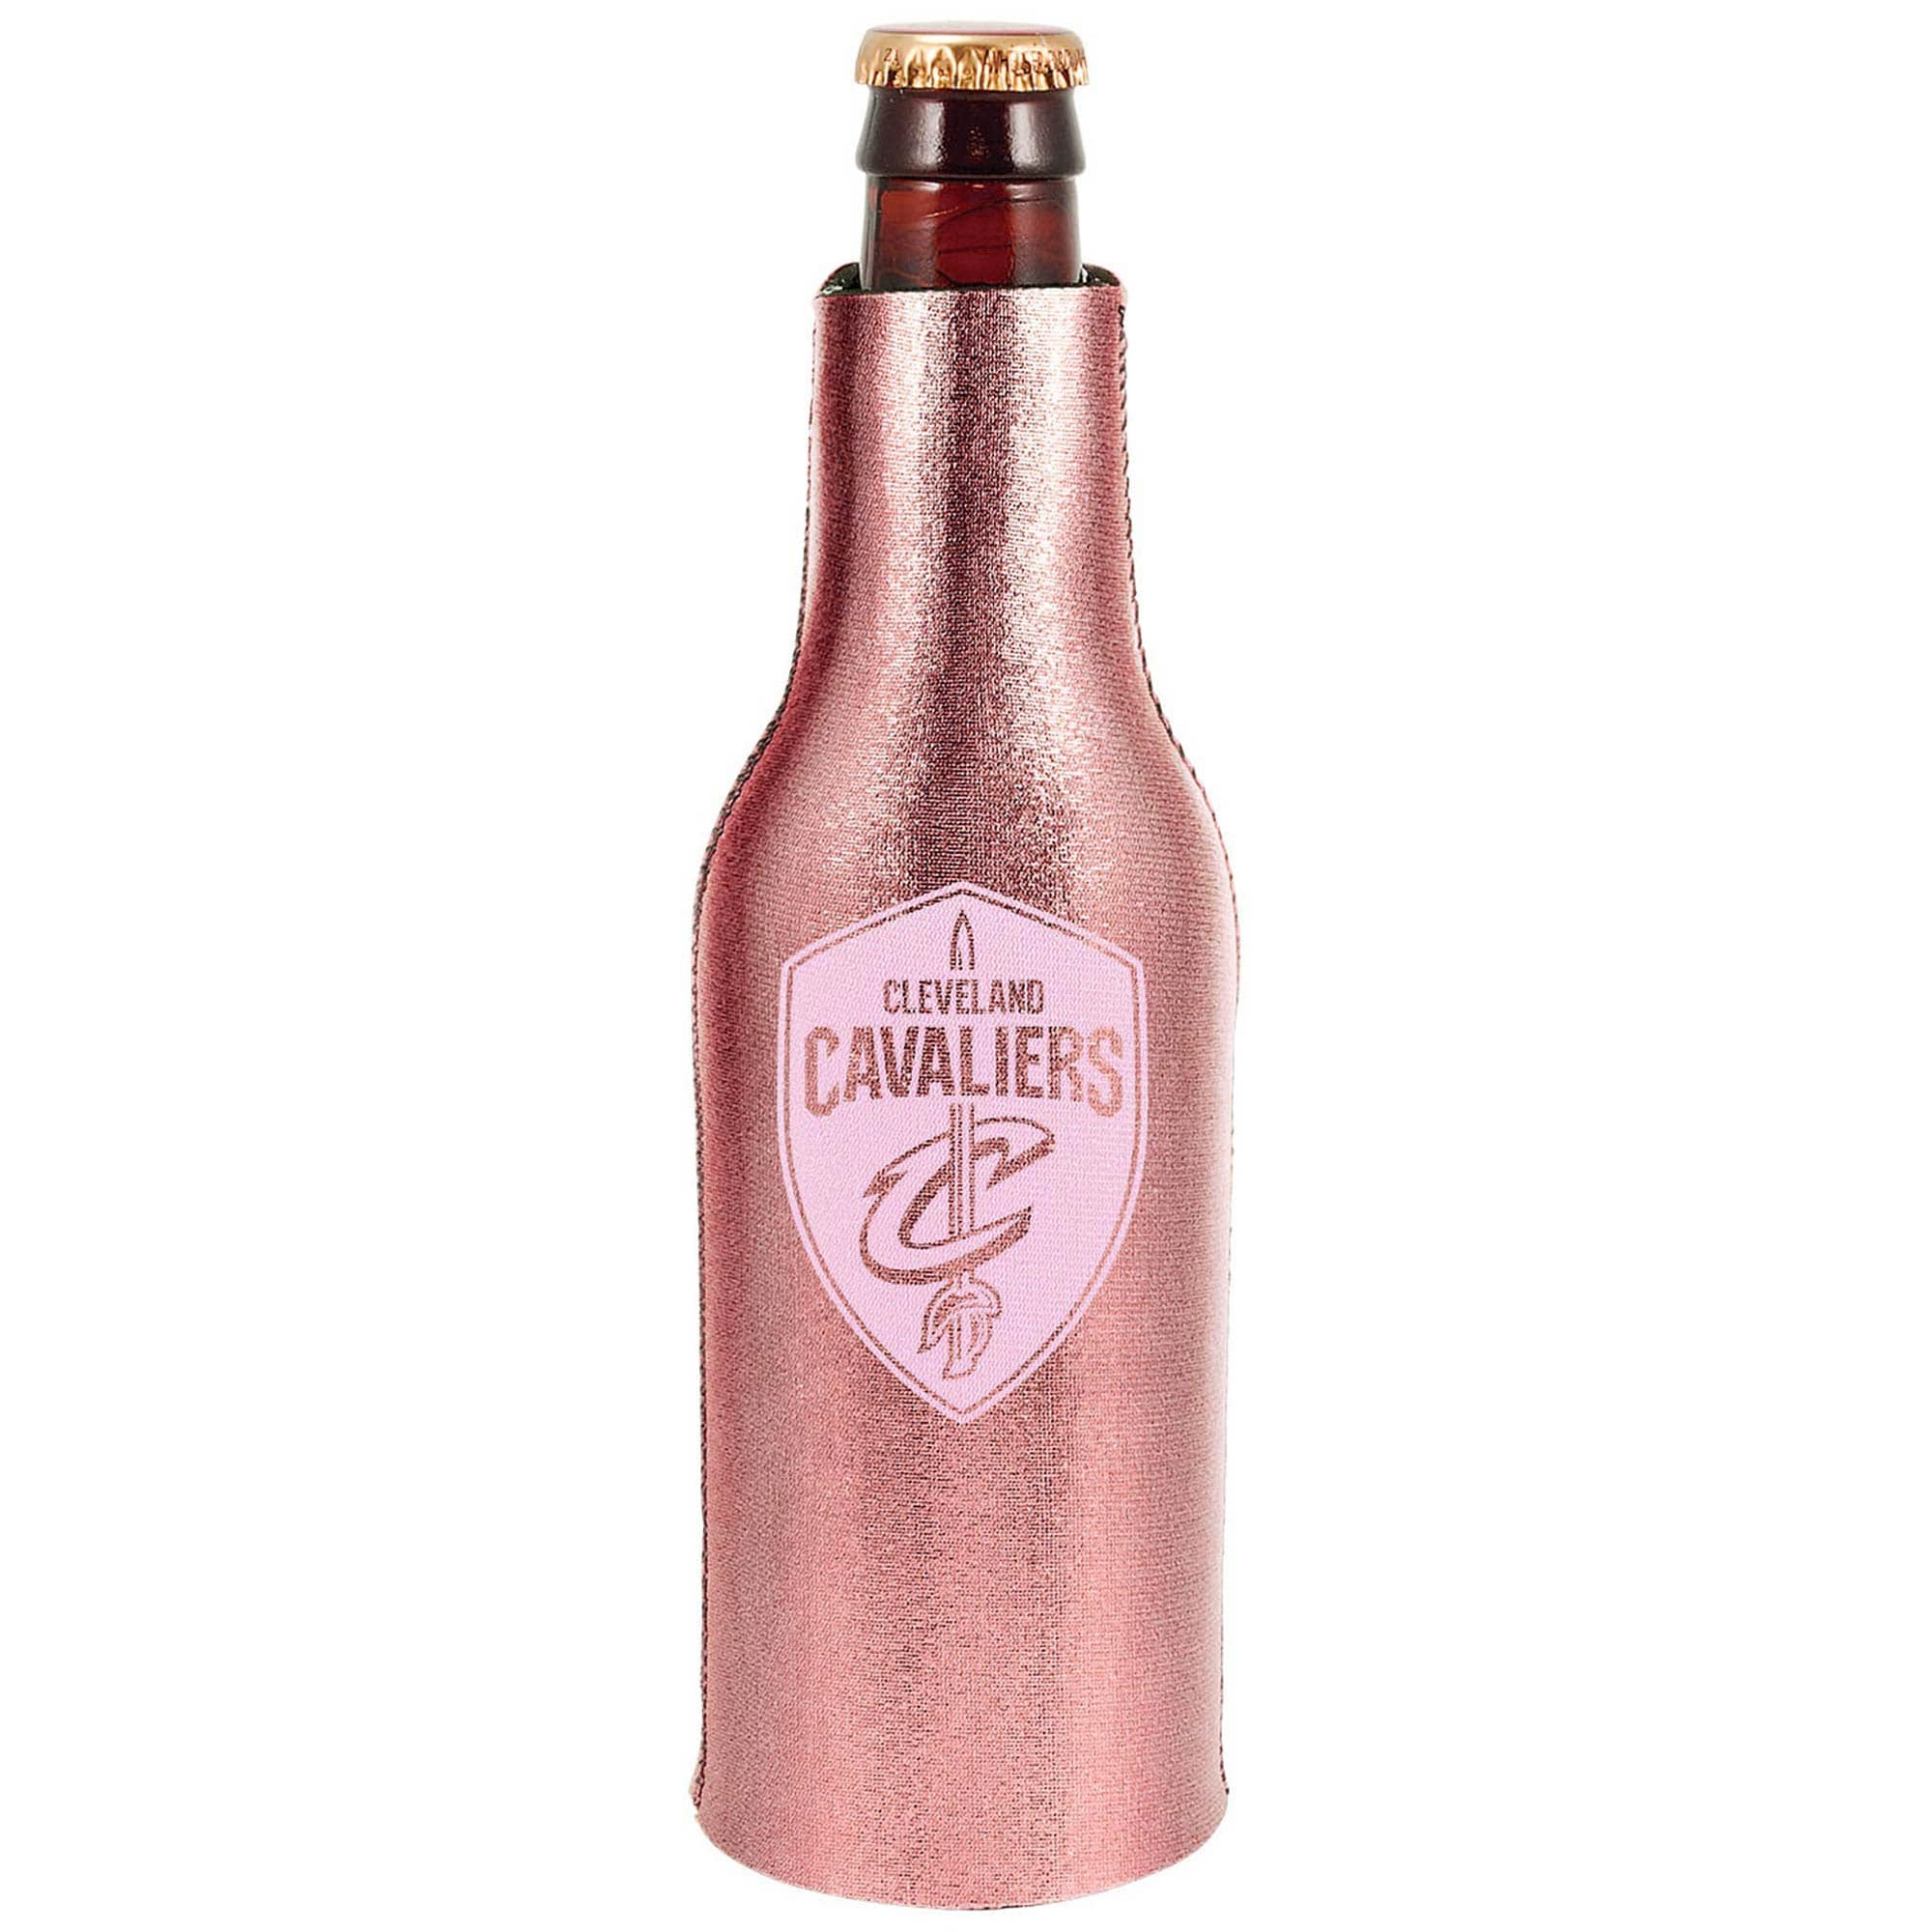 Cleveland Cavaliers 12oz. Rose Gold Bottle Cooler